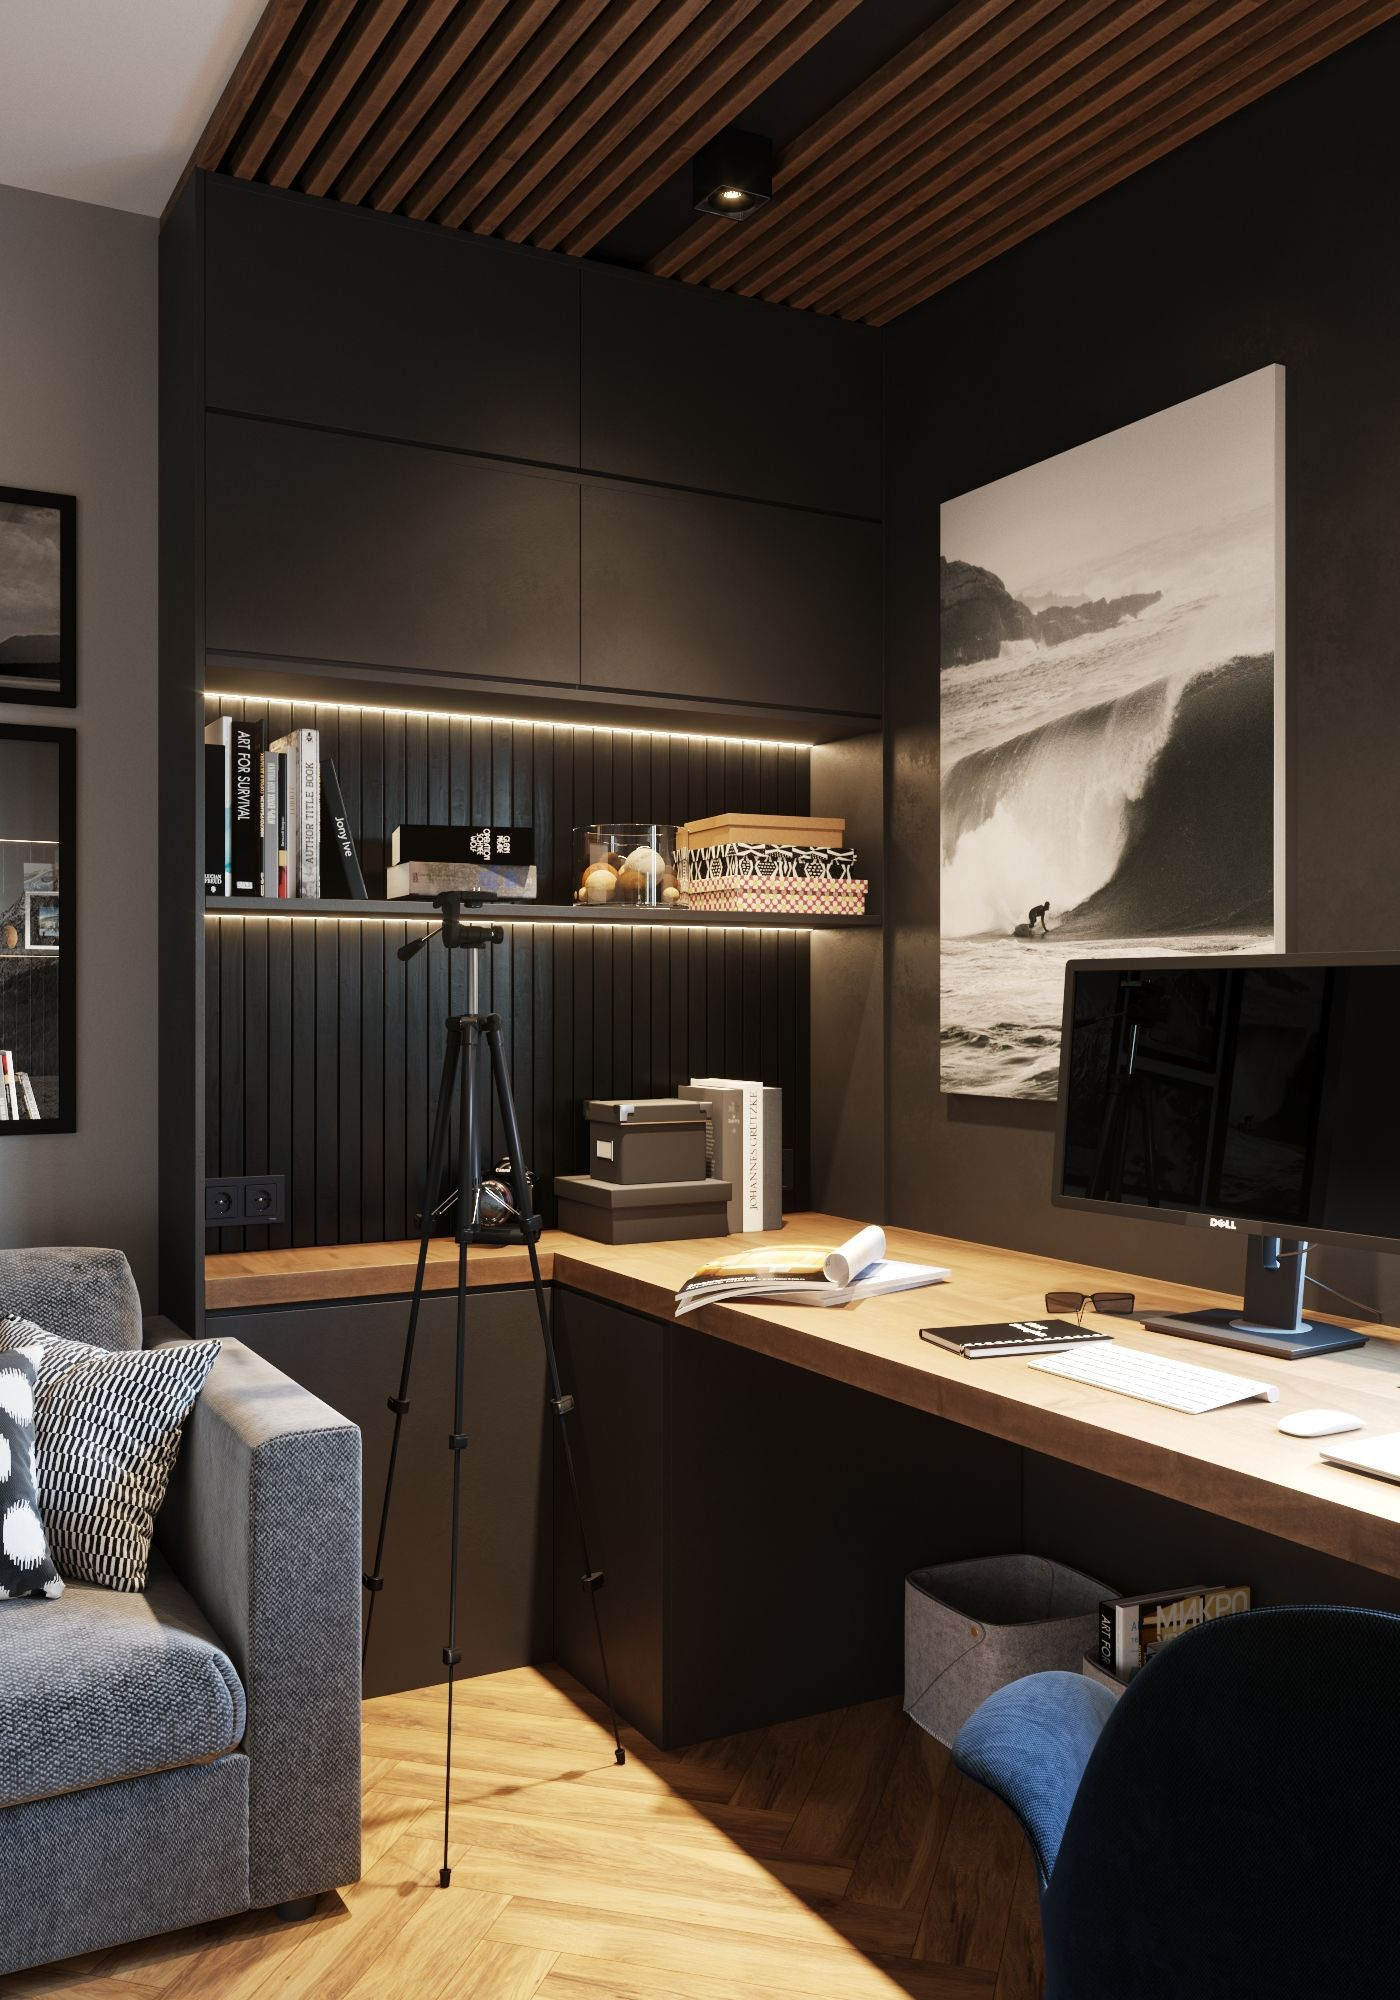 7 Home Office Ideas That Will Make You Reassess Your Work Space